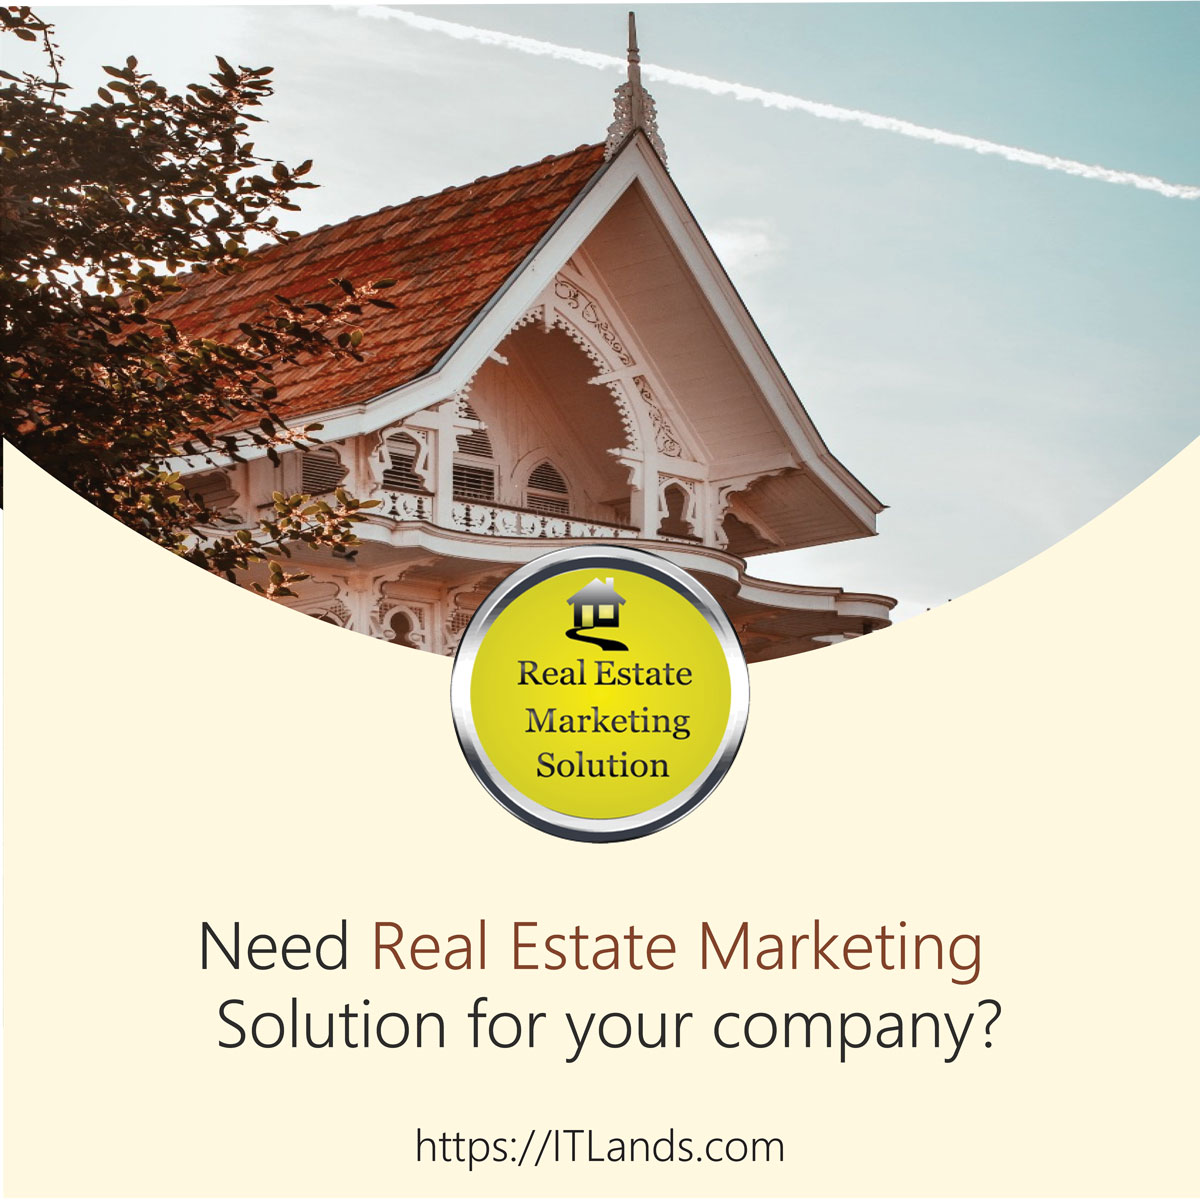 Real Estate Marketing Solution""